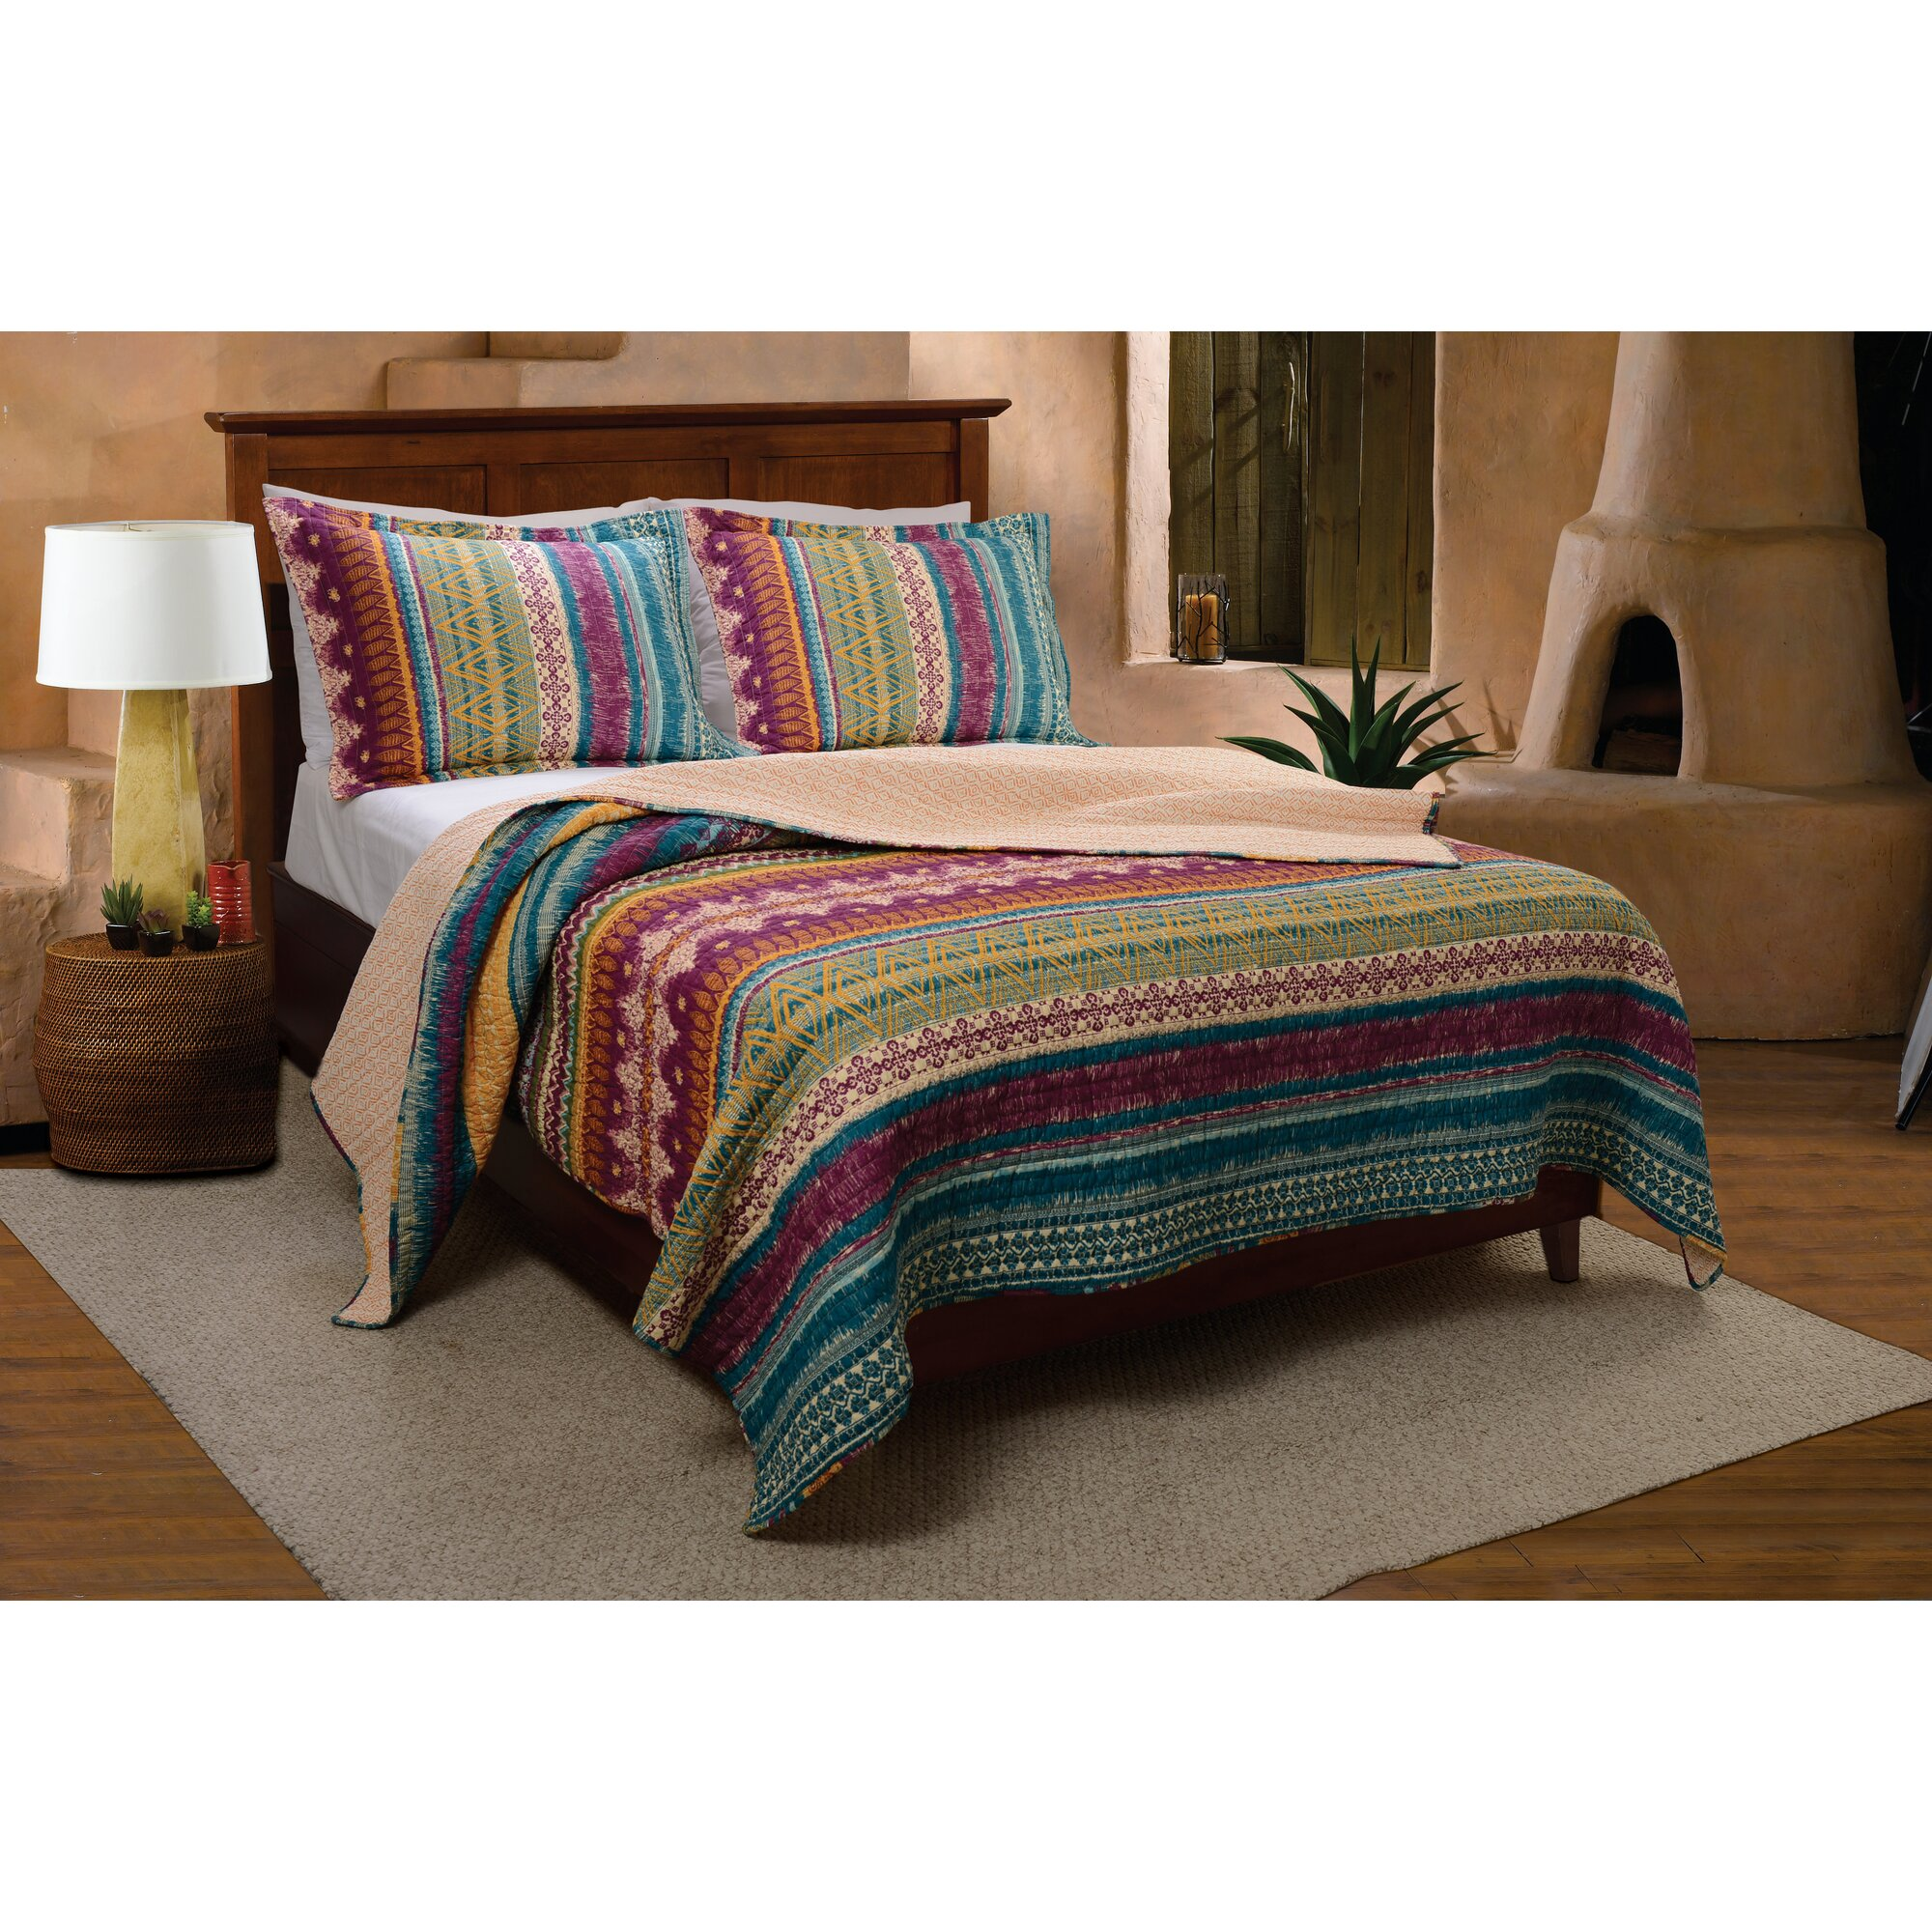 Bed sheet set with quilt - Yesilkoy Reversible Quilt Set